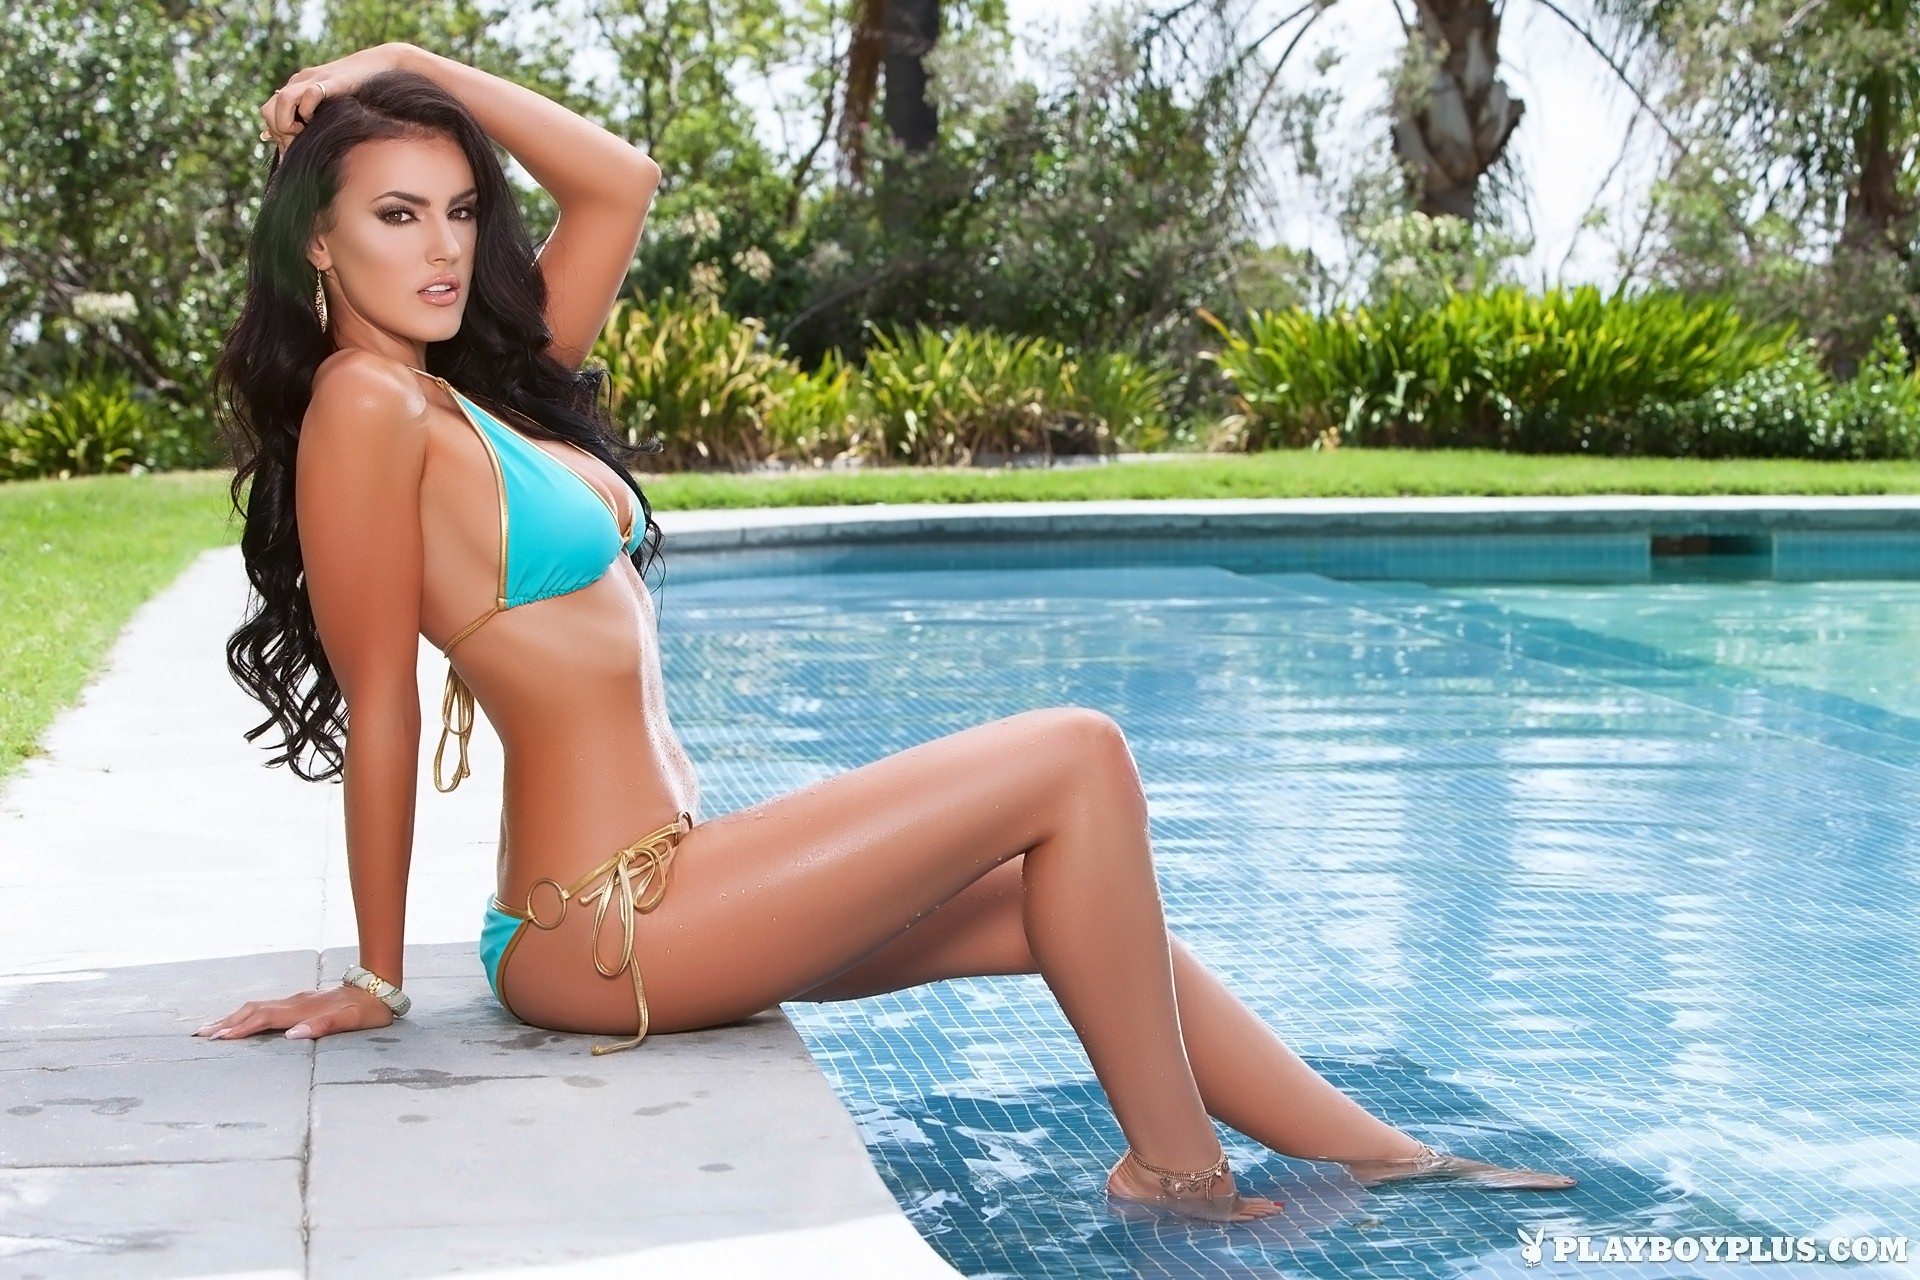 Ashleigh Hannah Cybergirl of the Month September 2015 | A